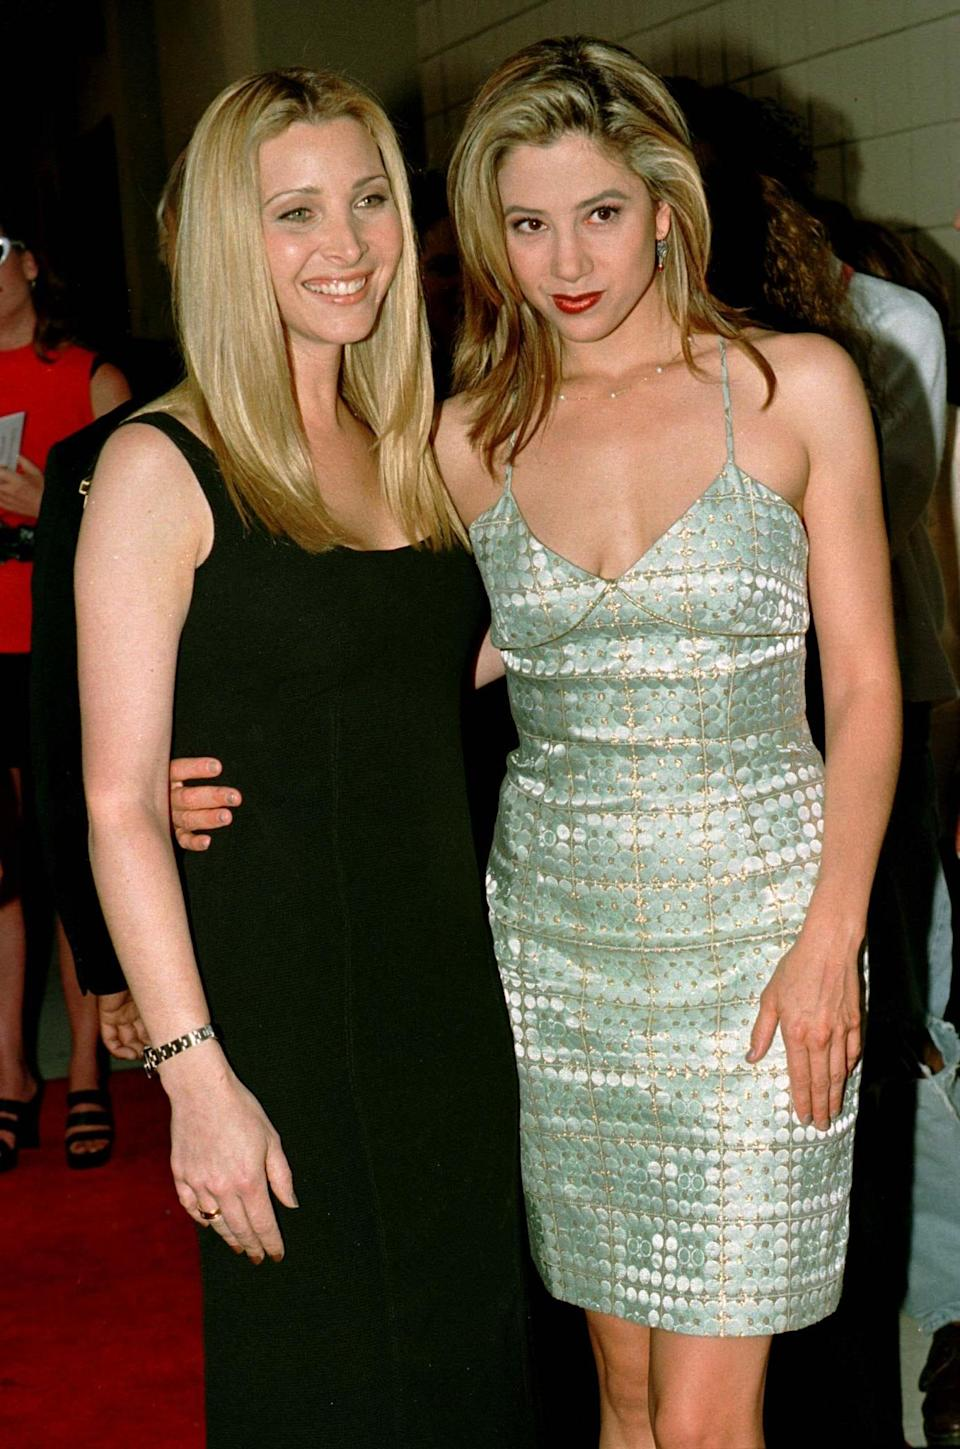 Actresses Lisa Kudrow (L) and Mira Sorvino pose as they arrive for the premiere of their new film